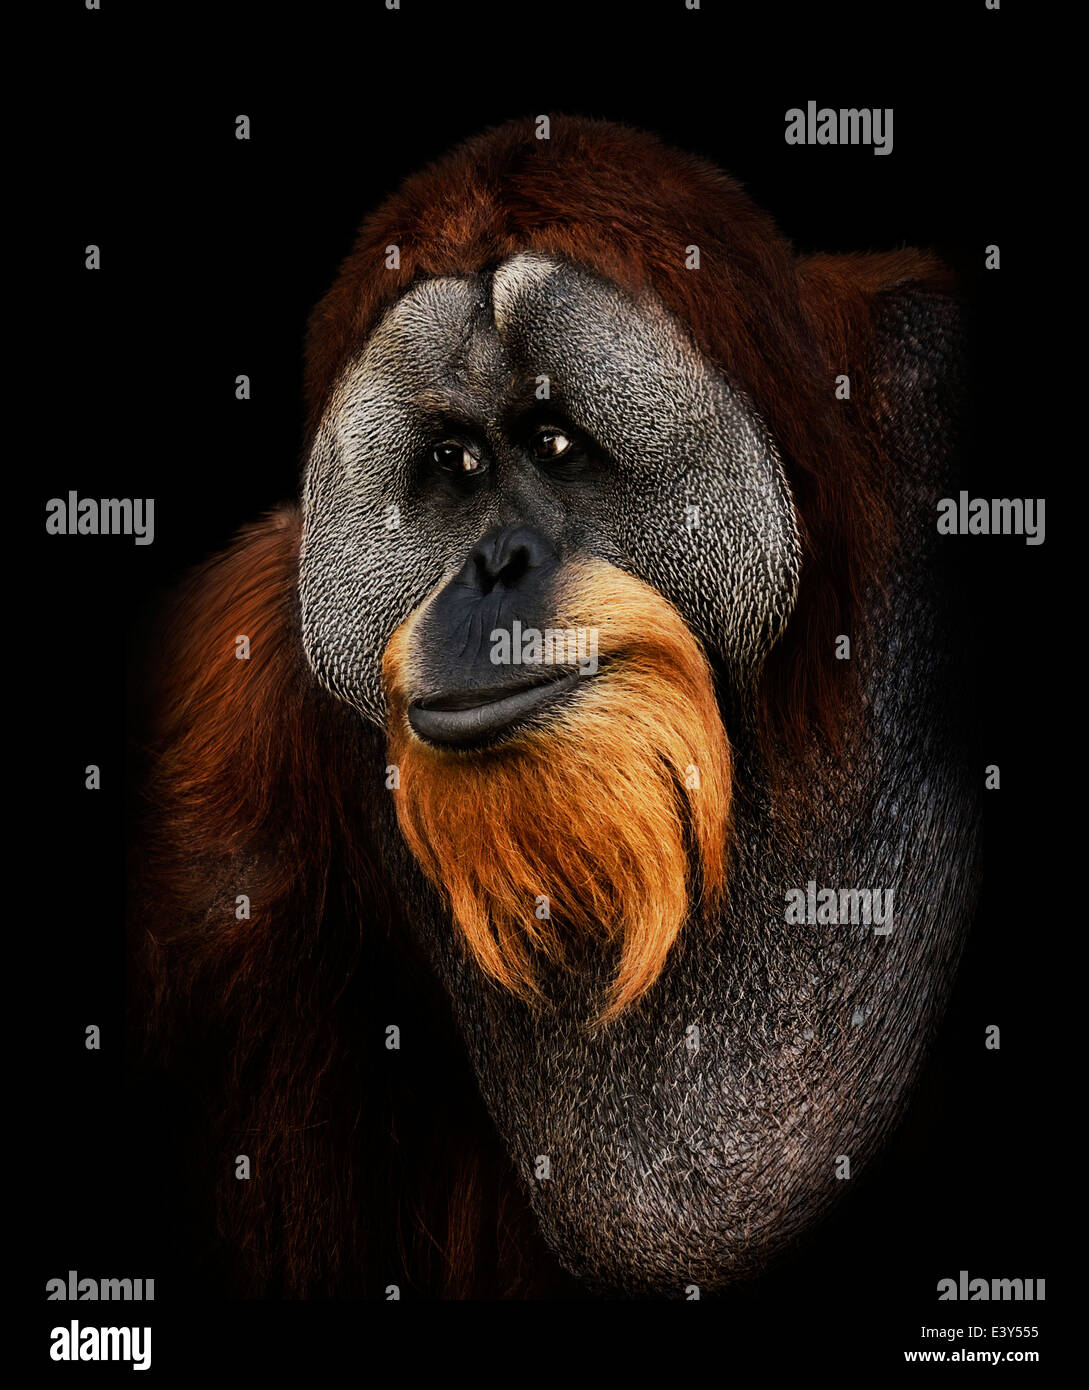 Portrait de l'orang-outan sur fond noir Photo Stock